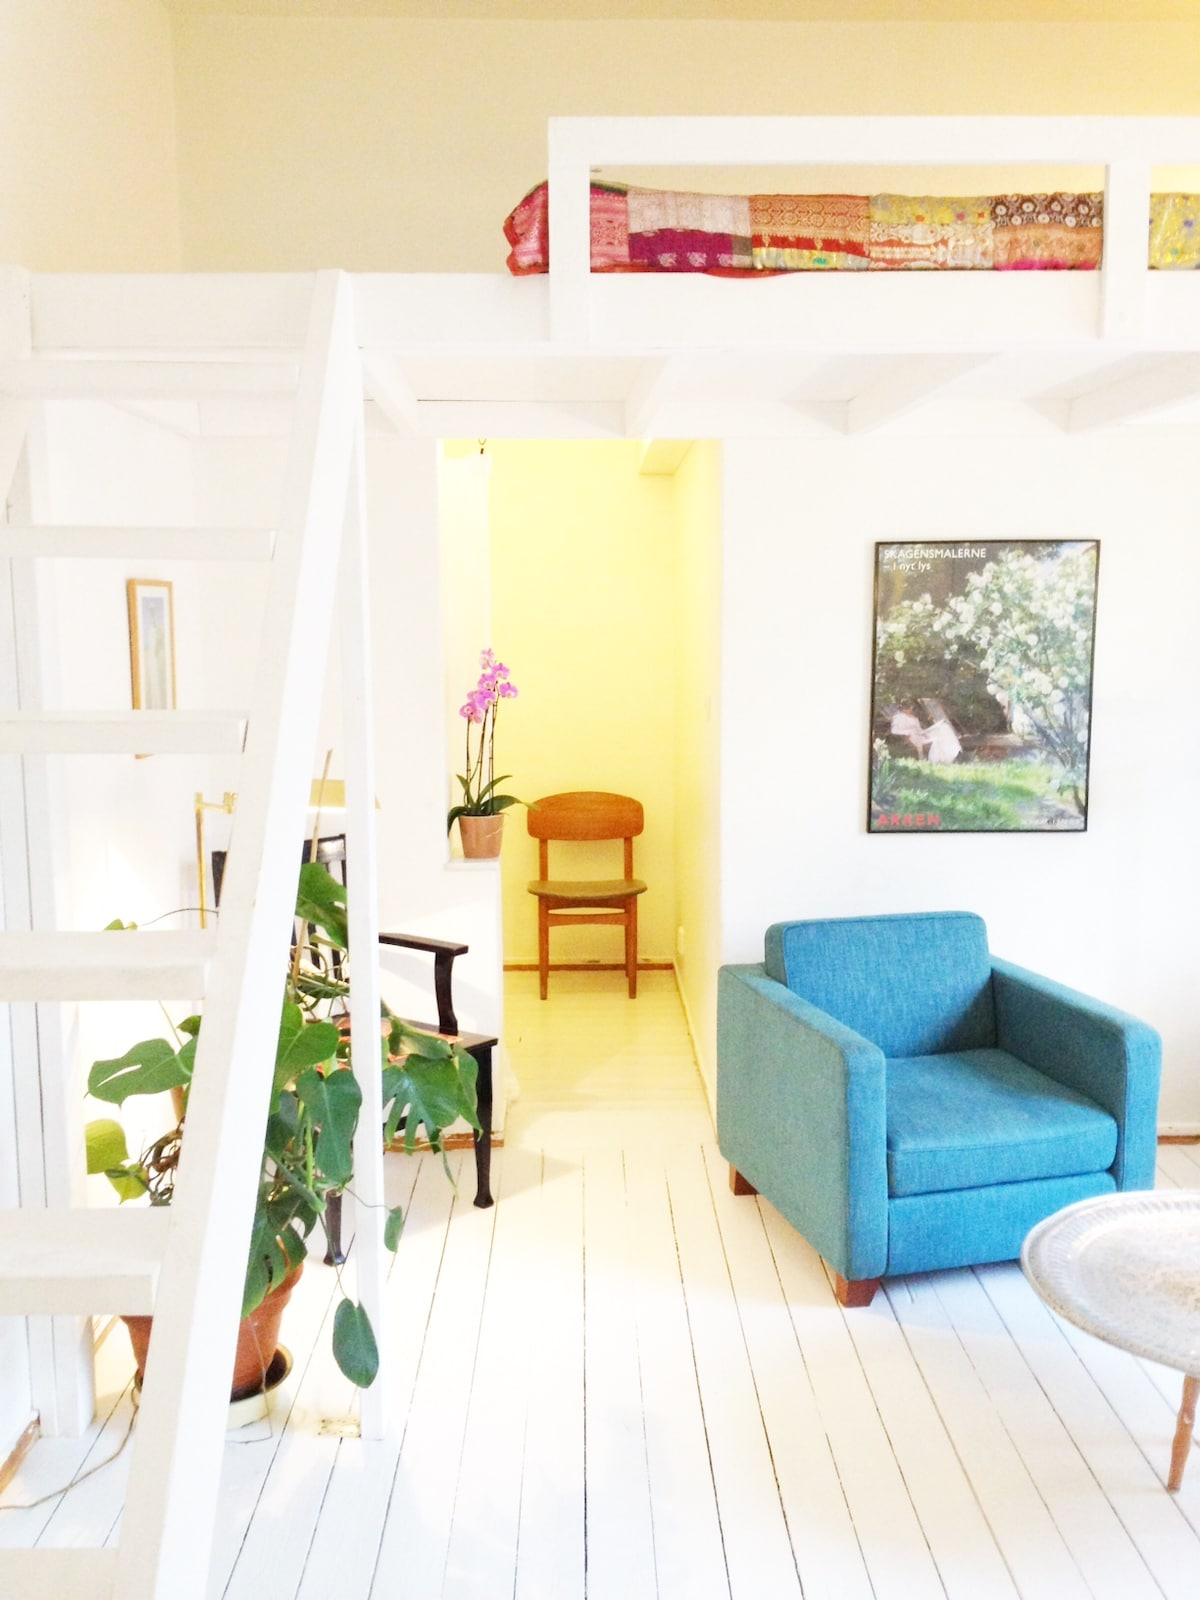 1,5 room studio, staircase to loft bed